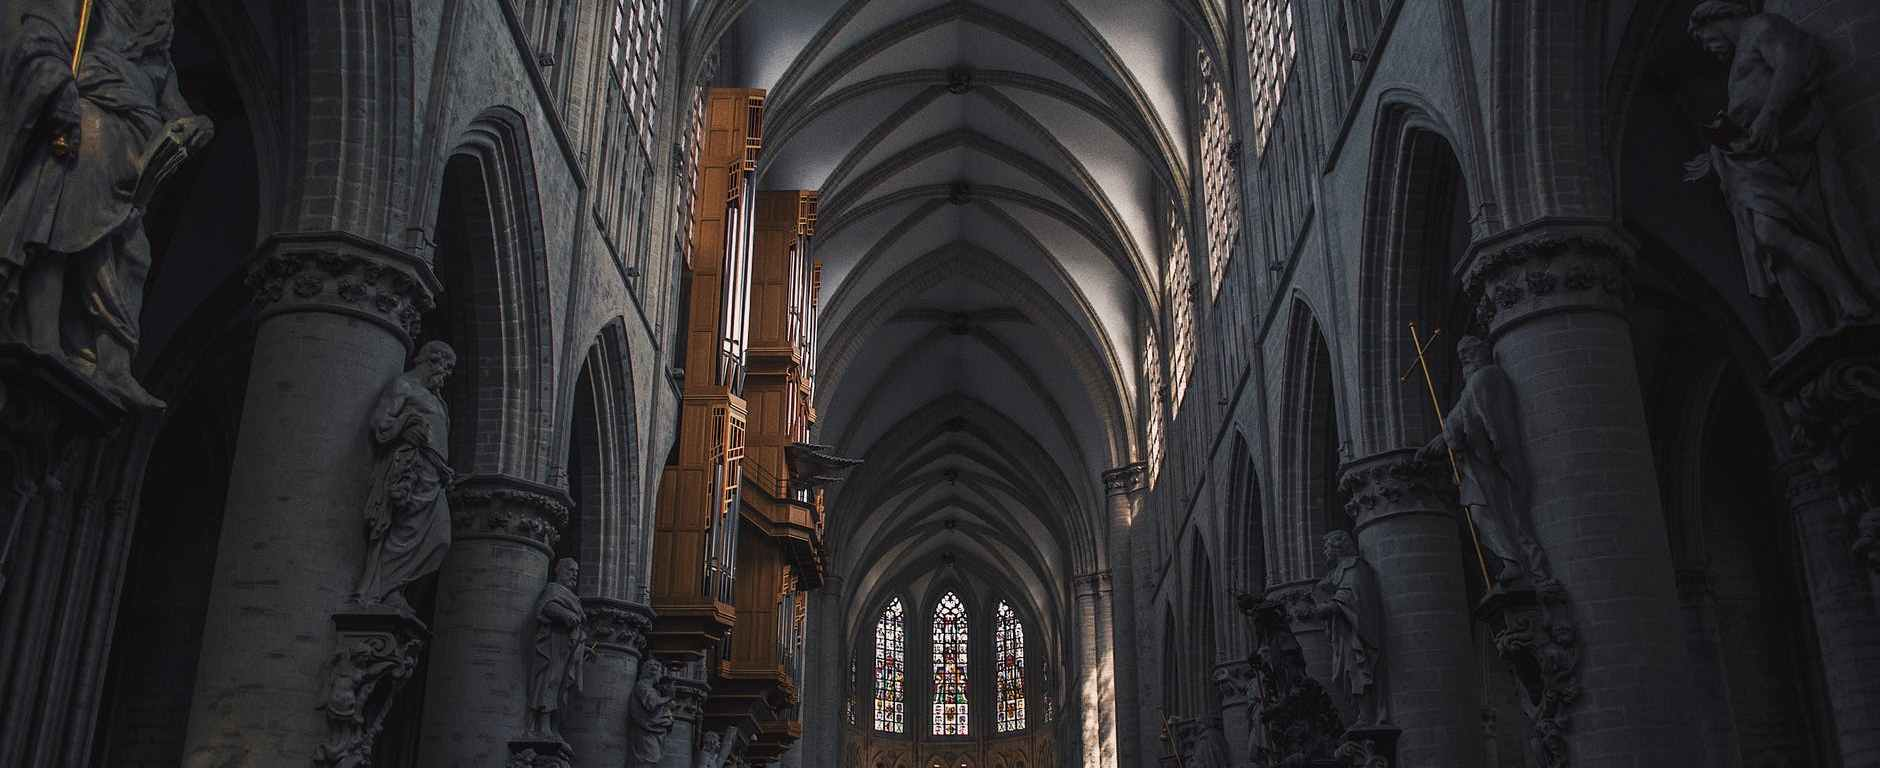 st michael and st gudula cathedral brussels